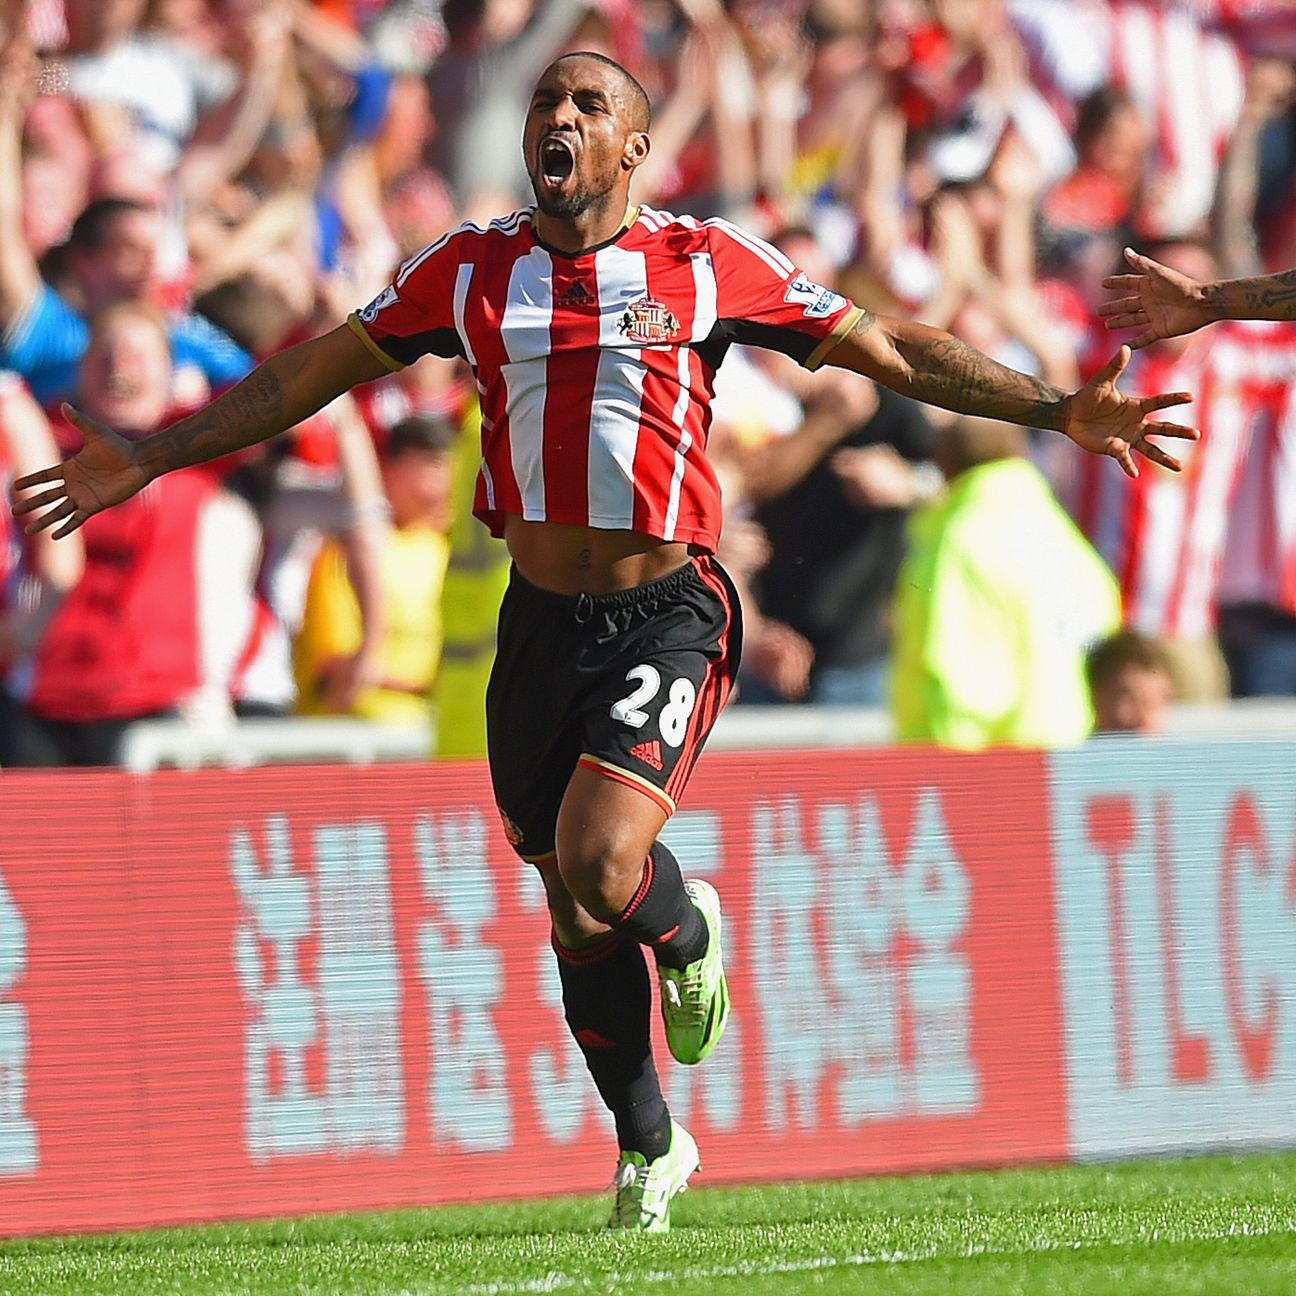 Sunderland will need Jermain Defoe to step up in the season's final weeks in order to avoid a drop to the Championship.